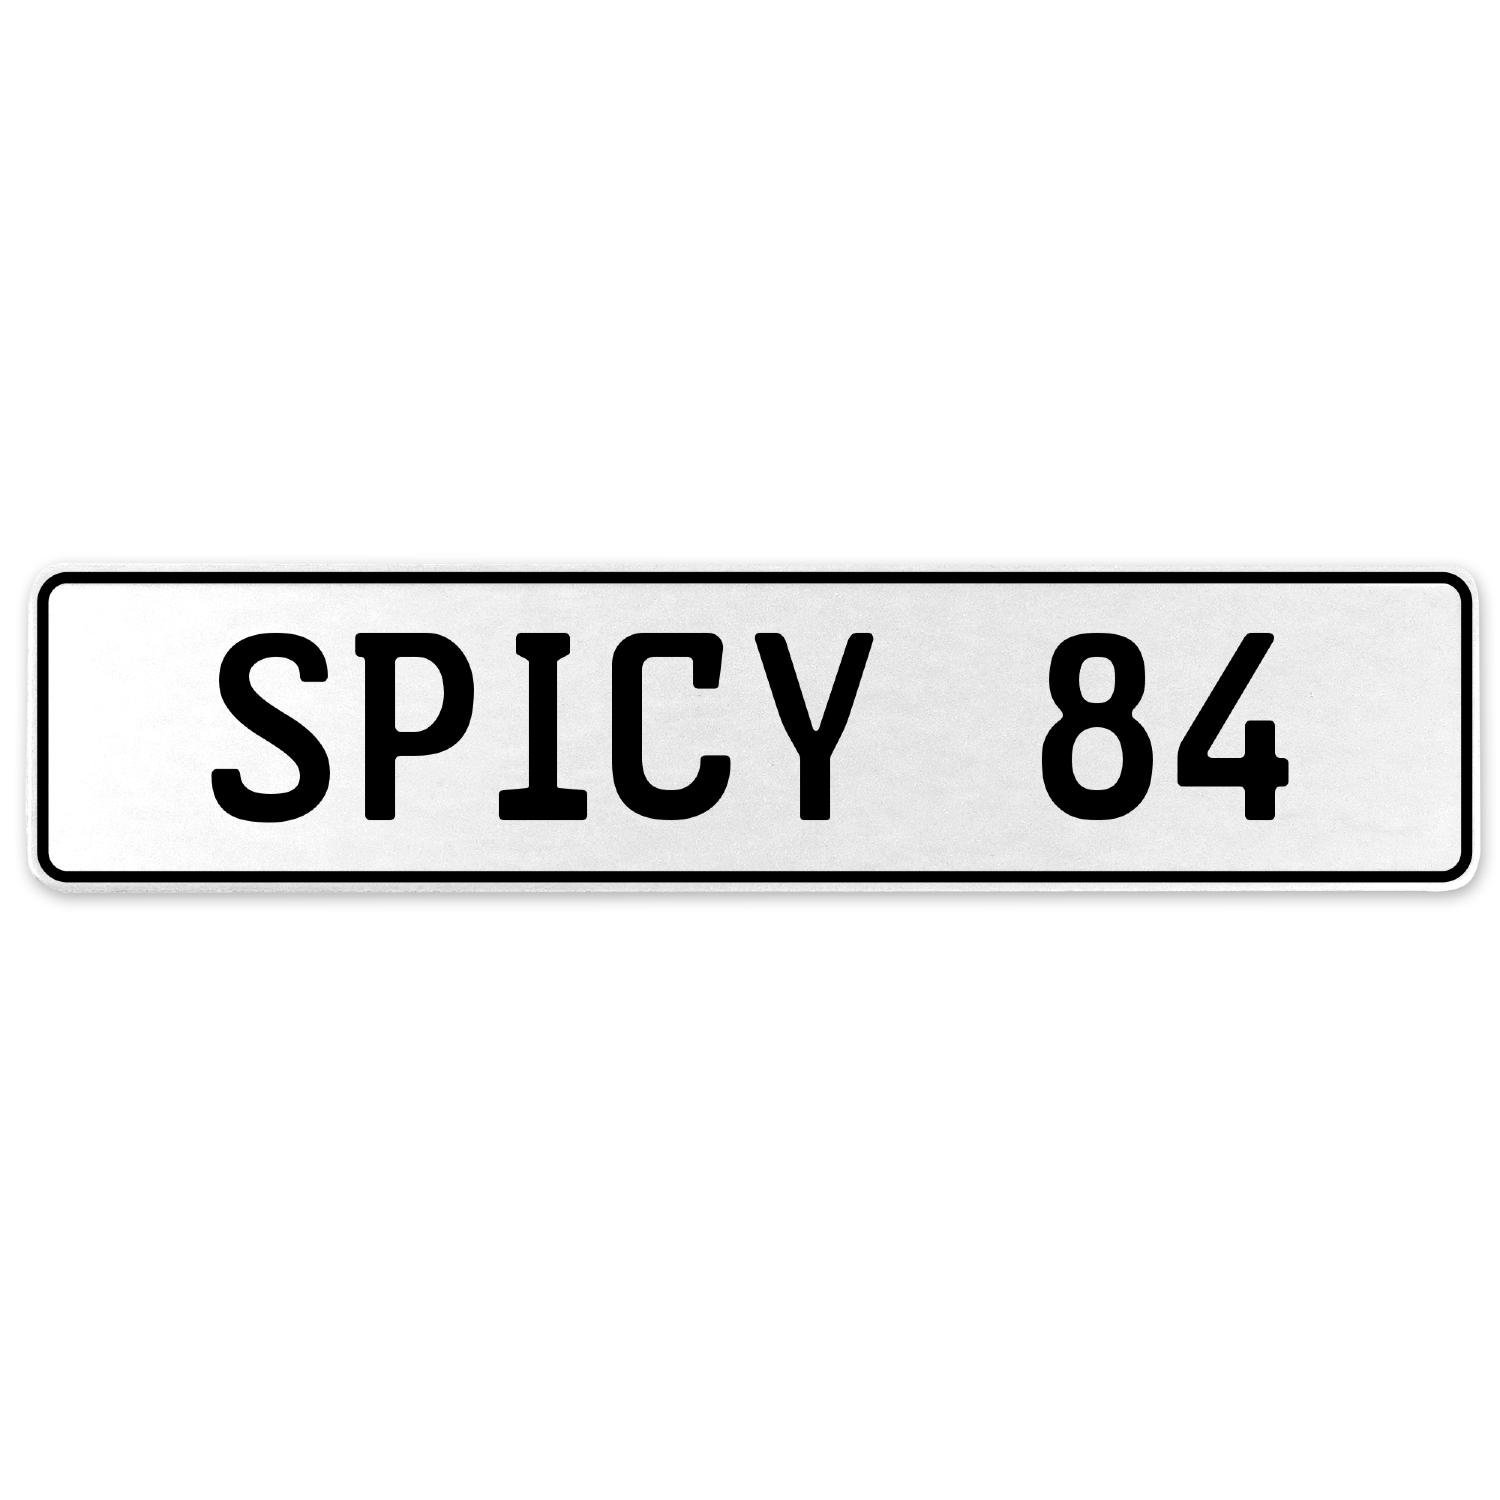 Vintage Parts 556562 Spicy 84 White Stamped Aluminum European License Plate